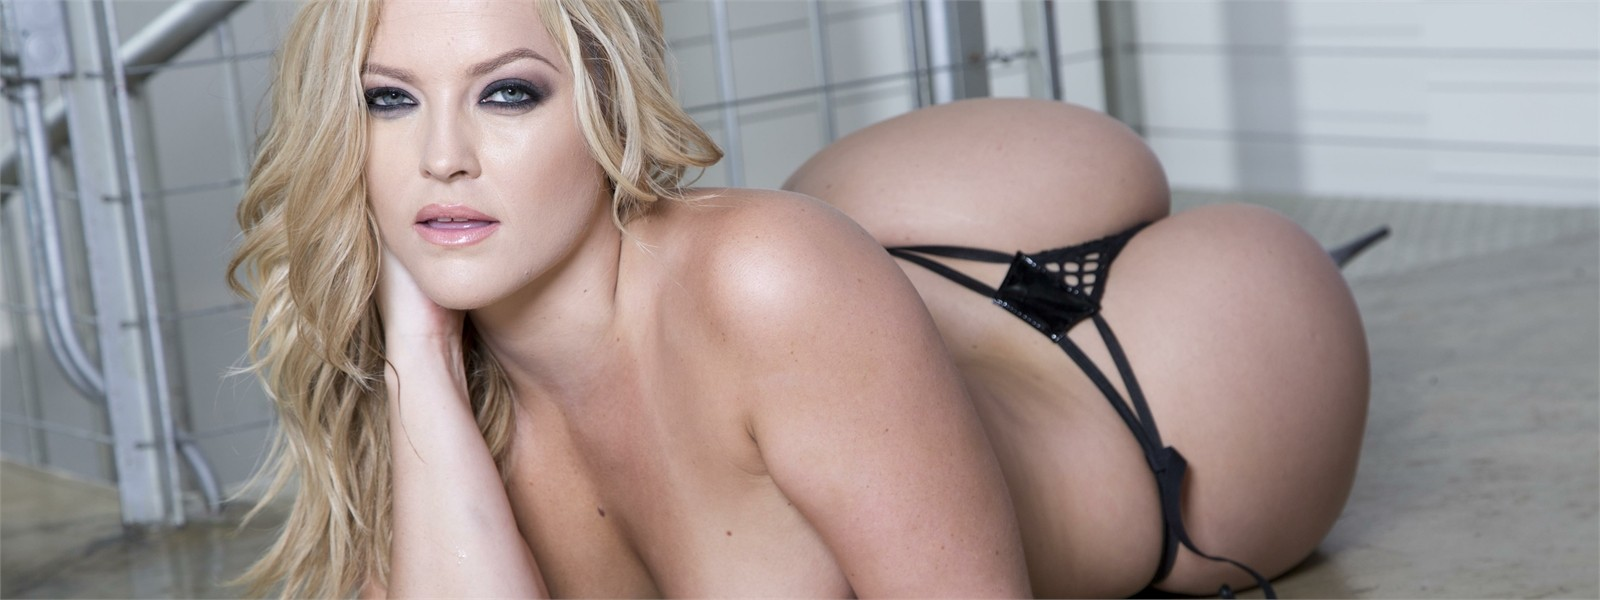 Consider, alexis texas porn videos something